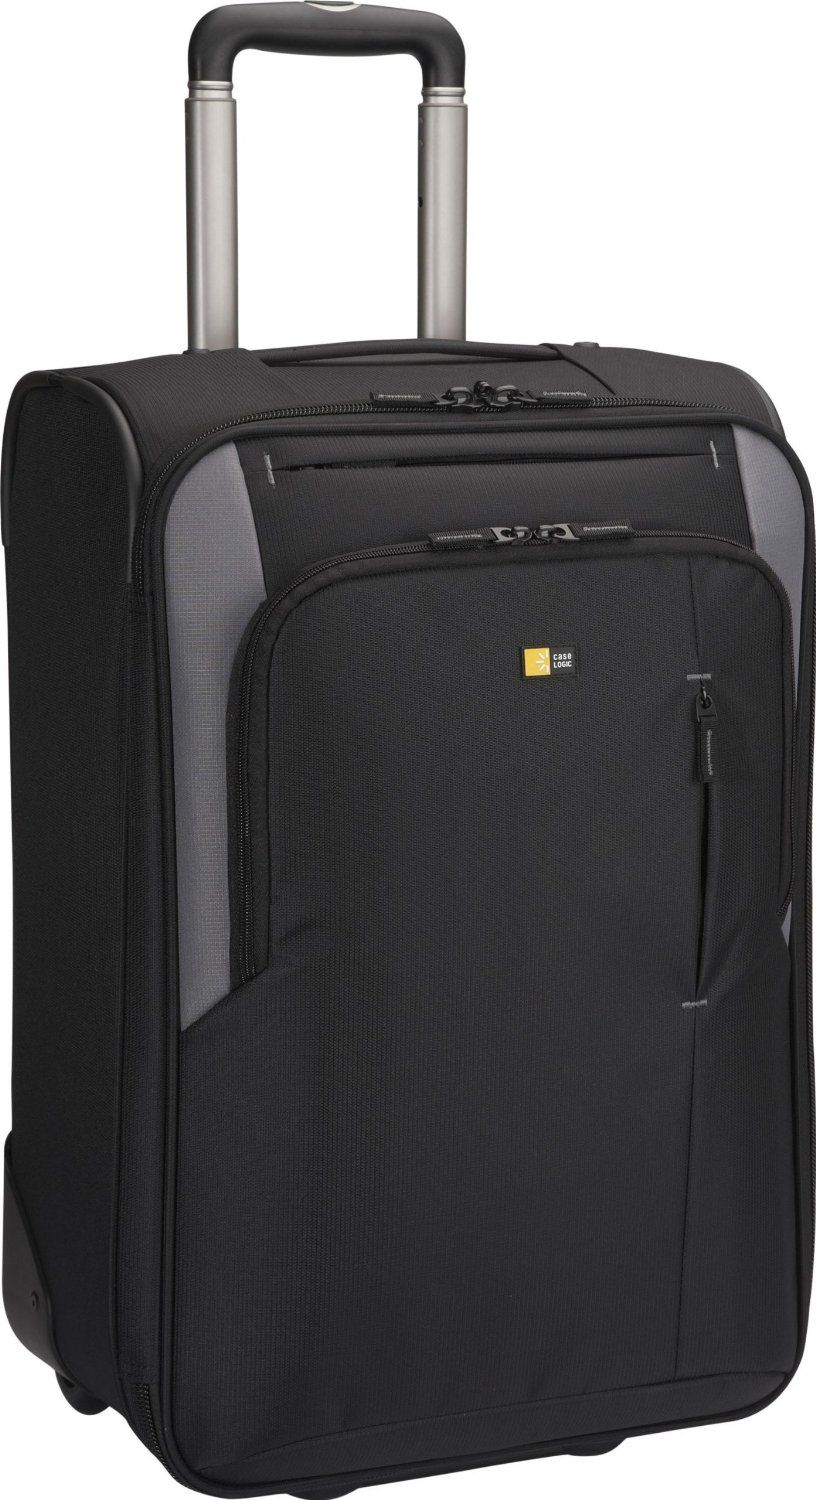 Case logic luggage global rolling upright black one size product description one bag traveling at its best the contemporary laptop compatible